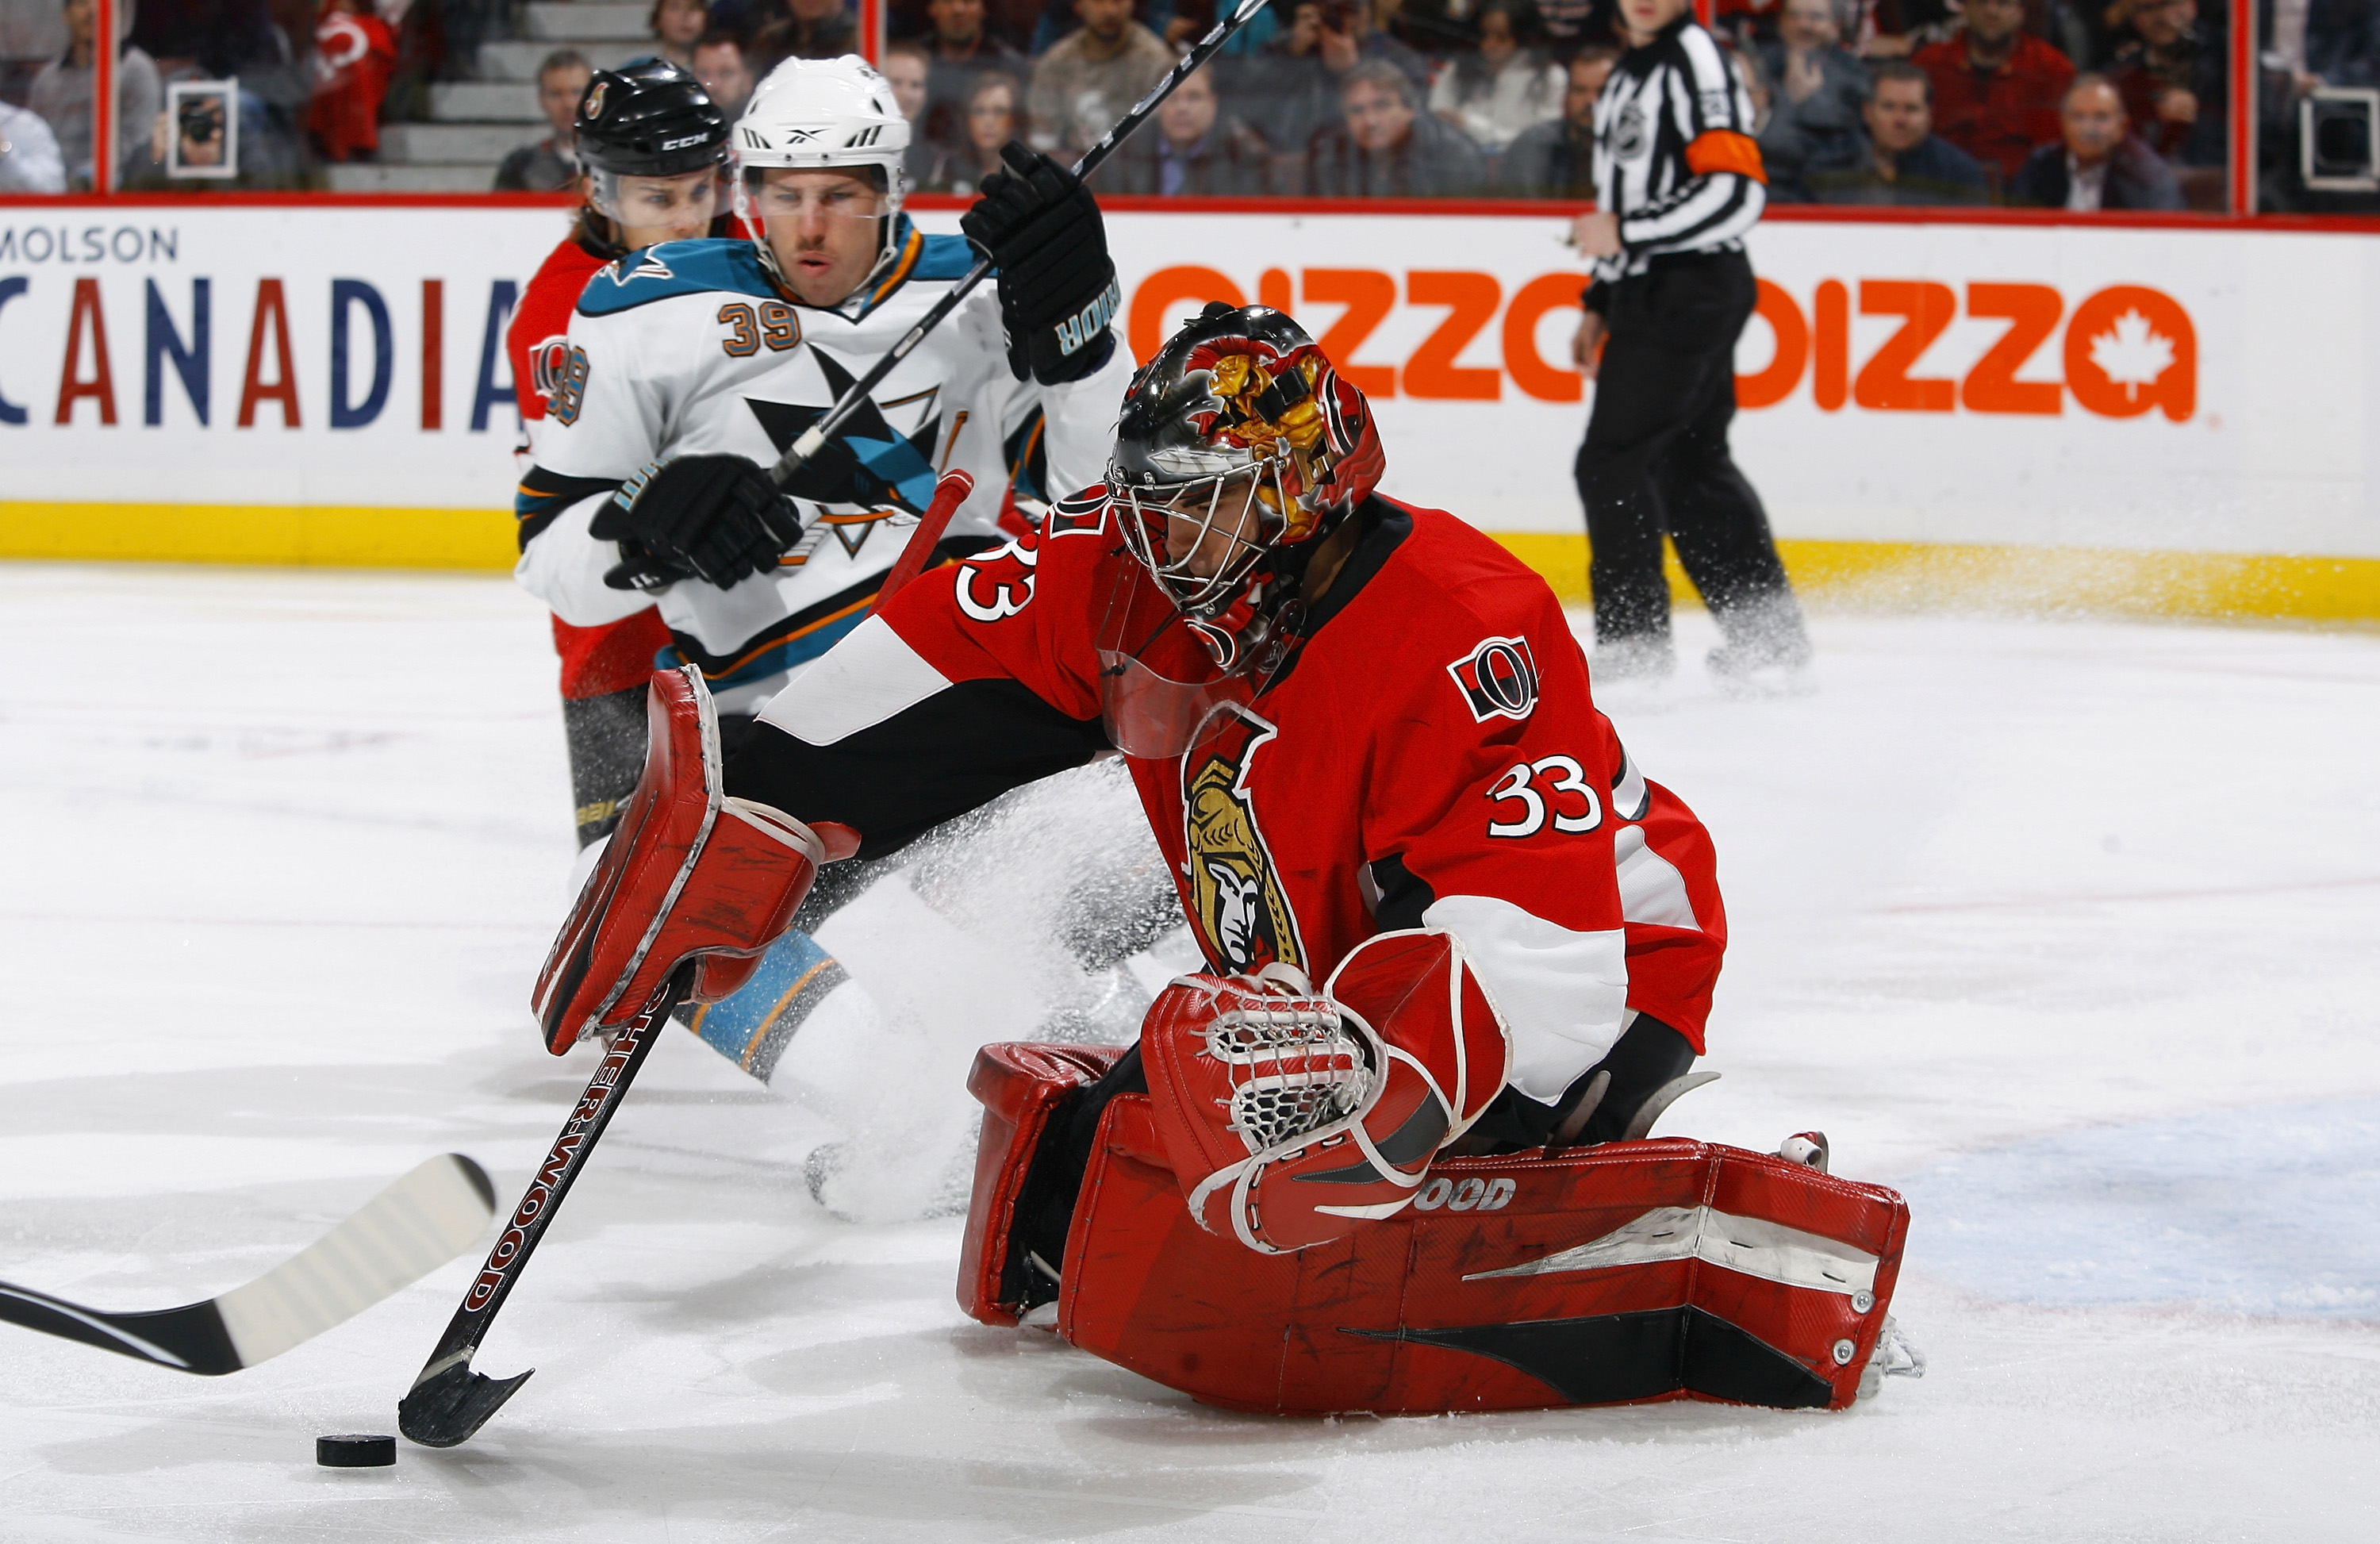 OTTAWA, ON - DECEMBER 02:  Pascal Leclaire #33 of the Ottawa Senators tries to control a rebound while Logan Couture #39 of the San Jose Sharks skates hard into the crease in a game at Scotiabank Place on December 2, 2010 in Ottawa, Ontario, Canada.  (Pho